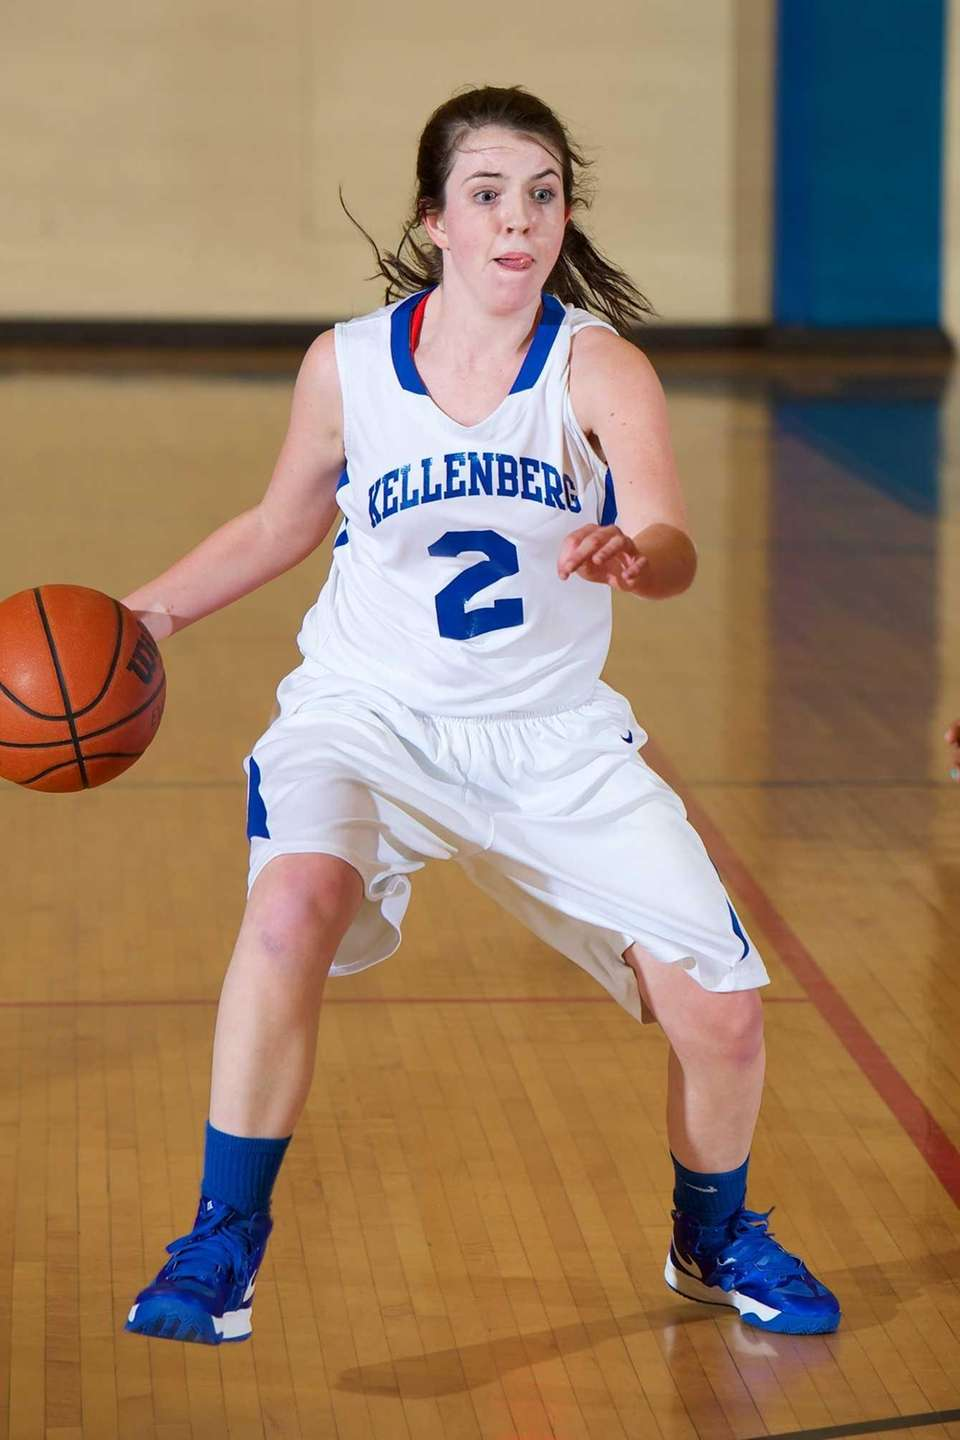 Kellenberg guard Brenna Dennelly (2) looks to drive